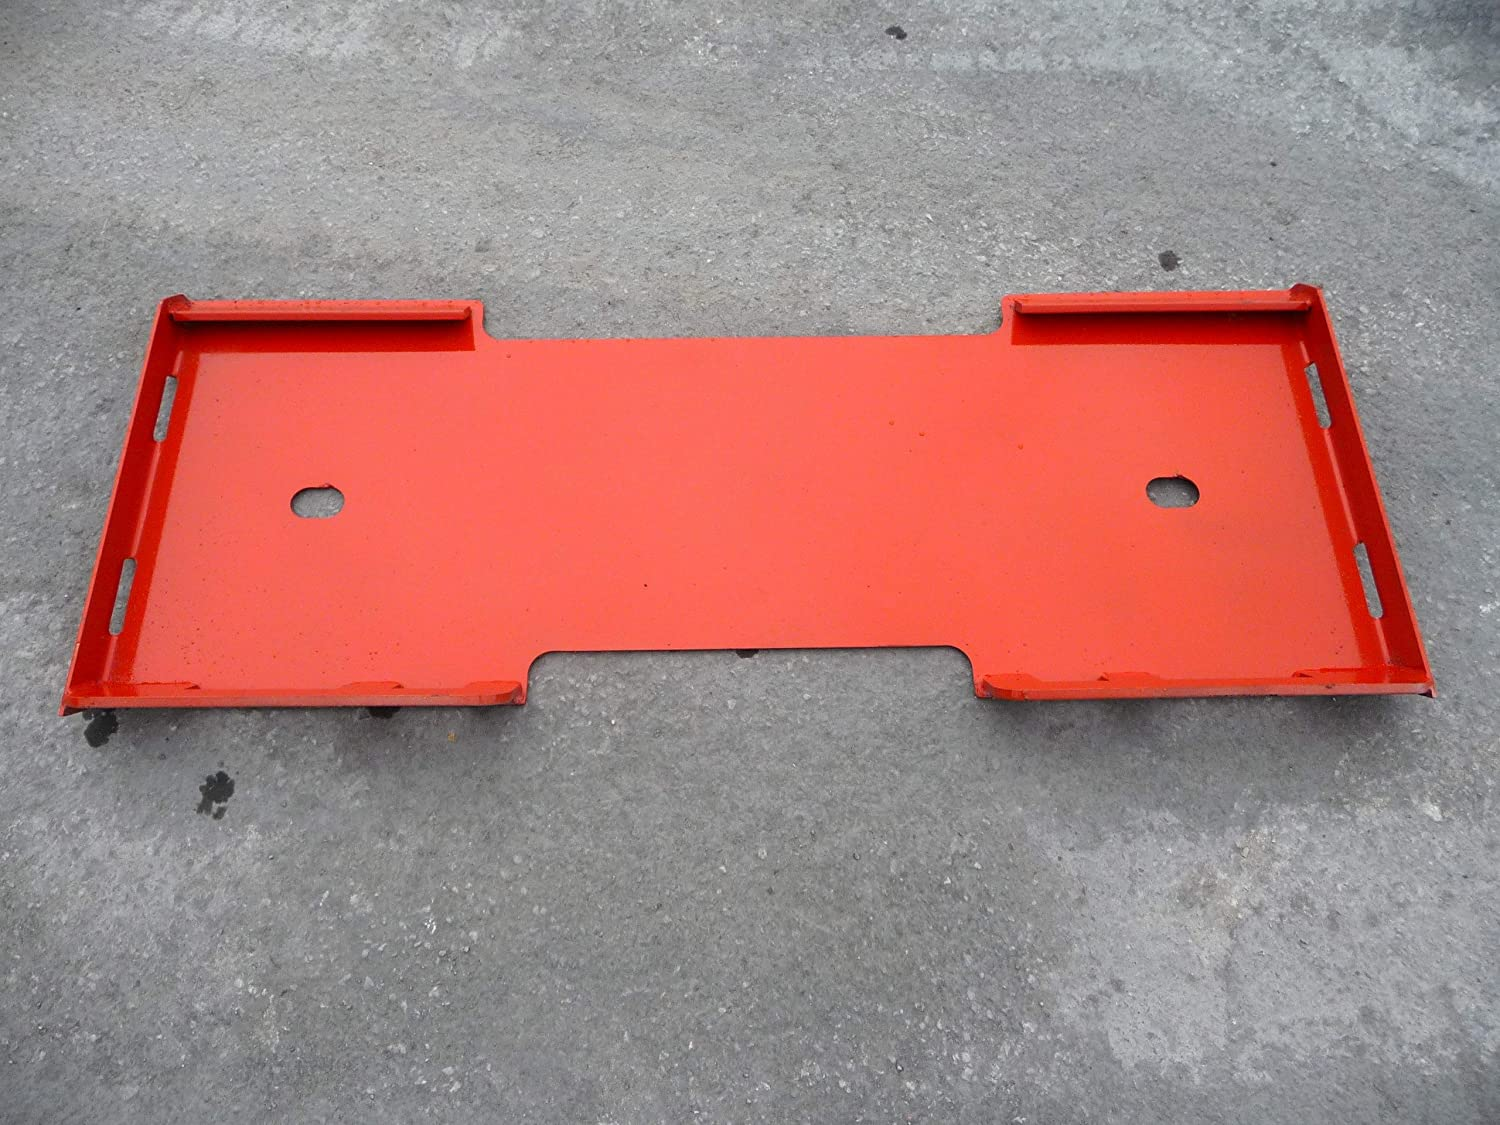 Skid Steer Kubota Loader Attachment Quick Connect Blank Mount Weld Plate